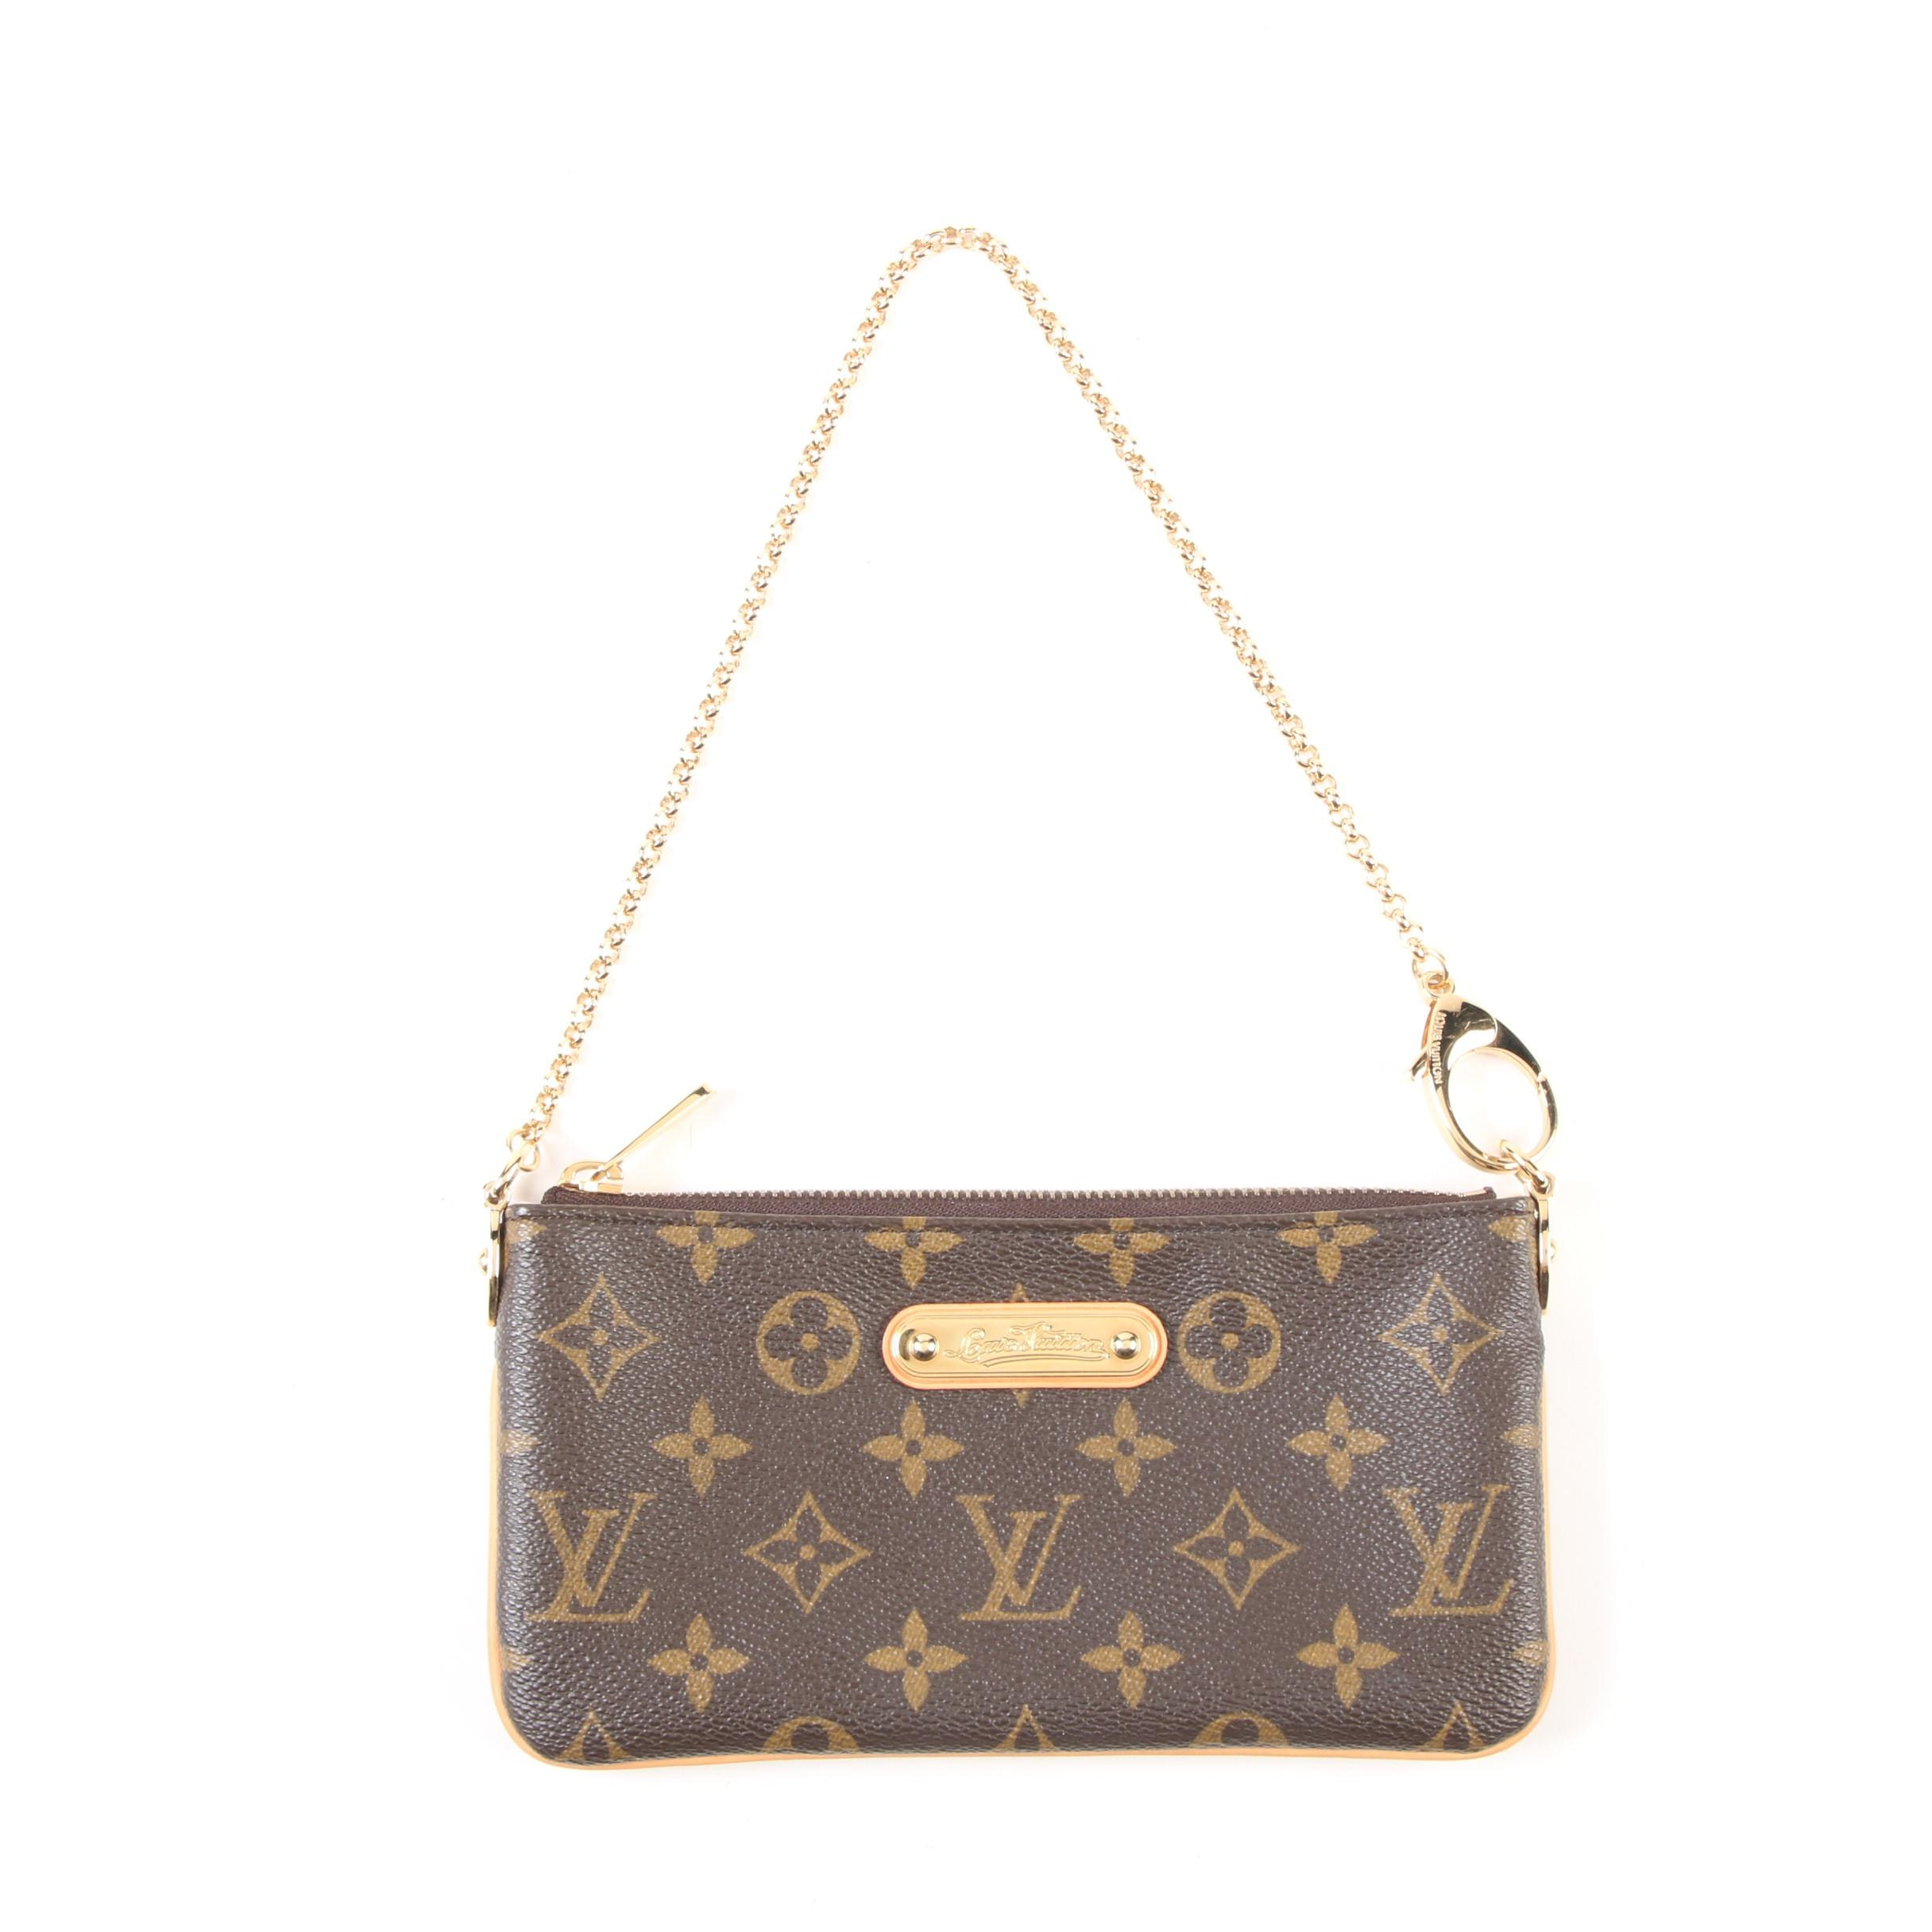 Louis Vuitton Paris Pochette Milla PM Wristlet